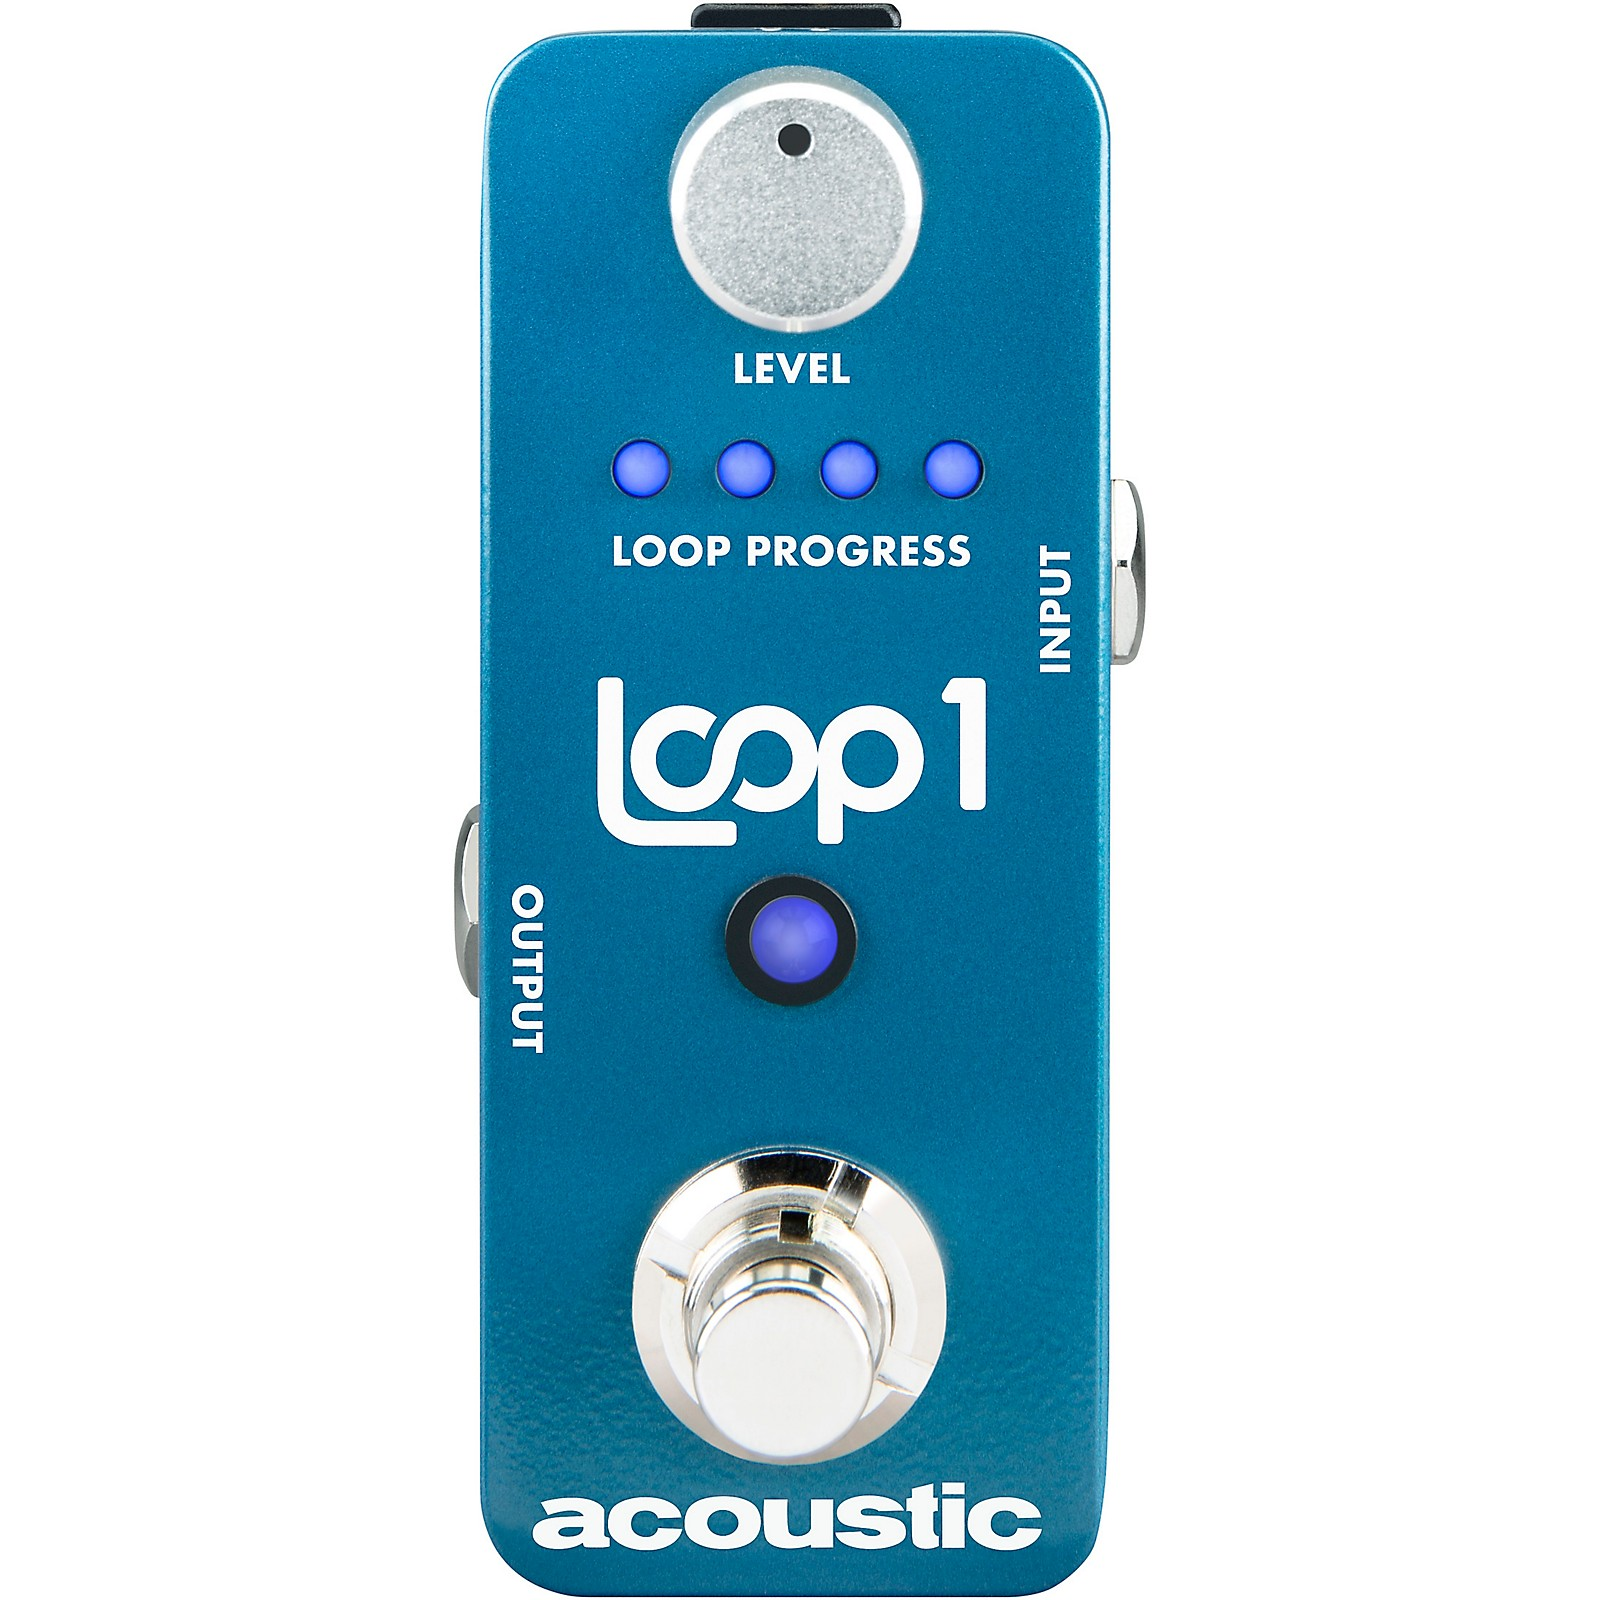 Acoustic Sound On Sound Looper Pedal with 30 Min Record Time And True Bypass